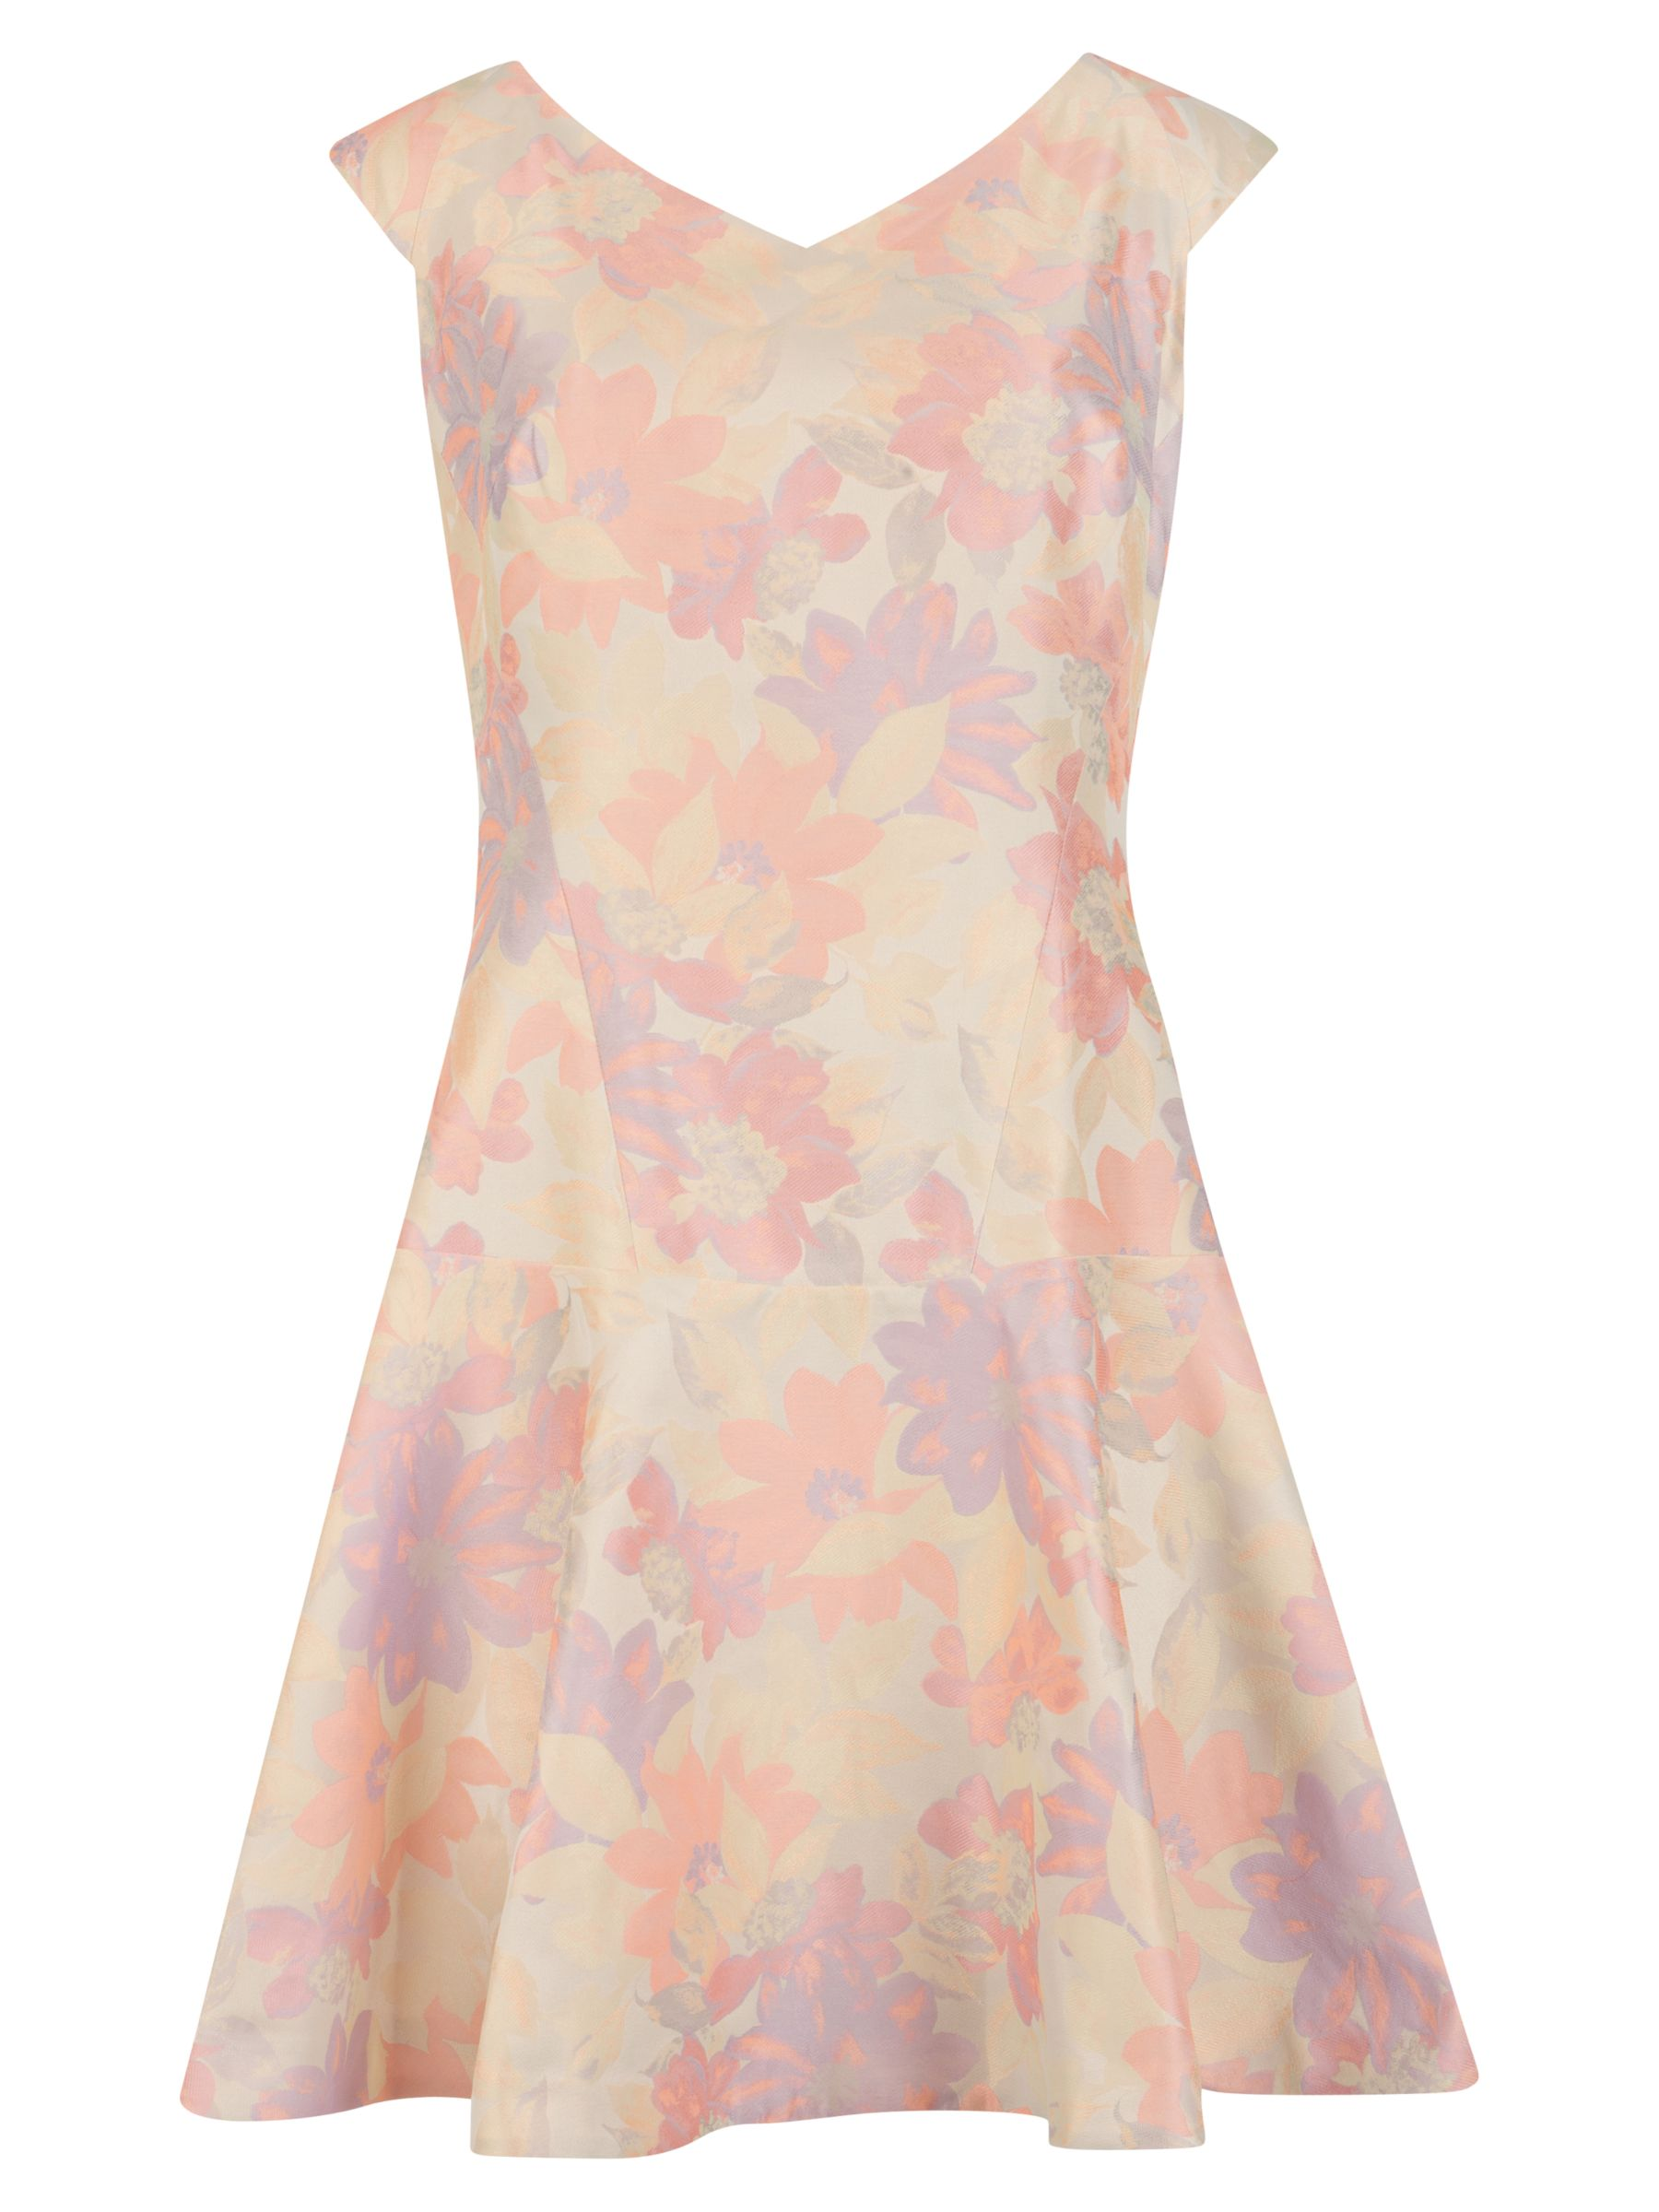 ted baker floral flippy jacquard dress nude, ted, baker, floral, flippy, jacquard, dress, nude, ted baker, 0|3|4|5|1|2, special offers, womenswear offers, 30% off selected ted baker, women, womens dresses, gifts, wedding, wedding clothing, female guests, inactive womenswear, outfit ideas, fashion magazine, womenswear, men, brands l-z, 1873404